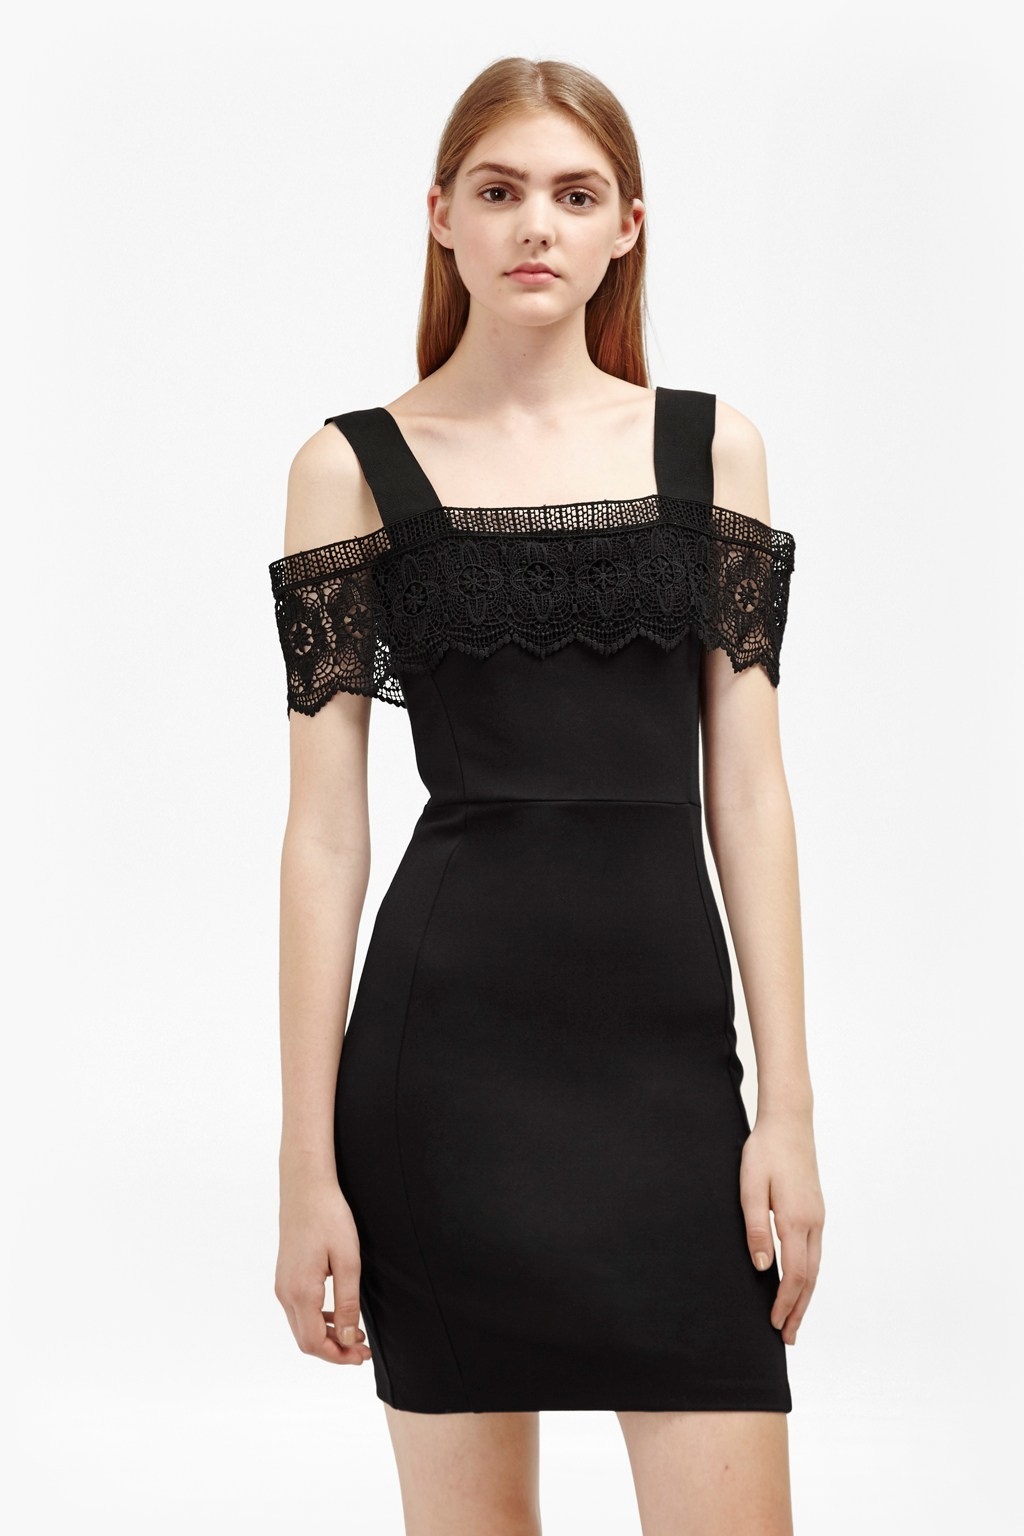 Petra Lace Beau Cold Shoulder Dress Black - length: mini; fit: tight; pattern: plain; style: bodycon; predominant colour: black; occasions: evening; fibres: viscose/rayon - stretch; shoulder detail: cut out shoulder; sleeve length: short sleeve; sleeve style: standard; texture group: jersey - clingy; neckline: medium square neck; pattern type: fabric; embellishment: lace; season: a/w 2016; wardrobe: event